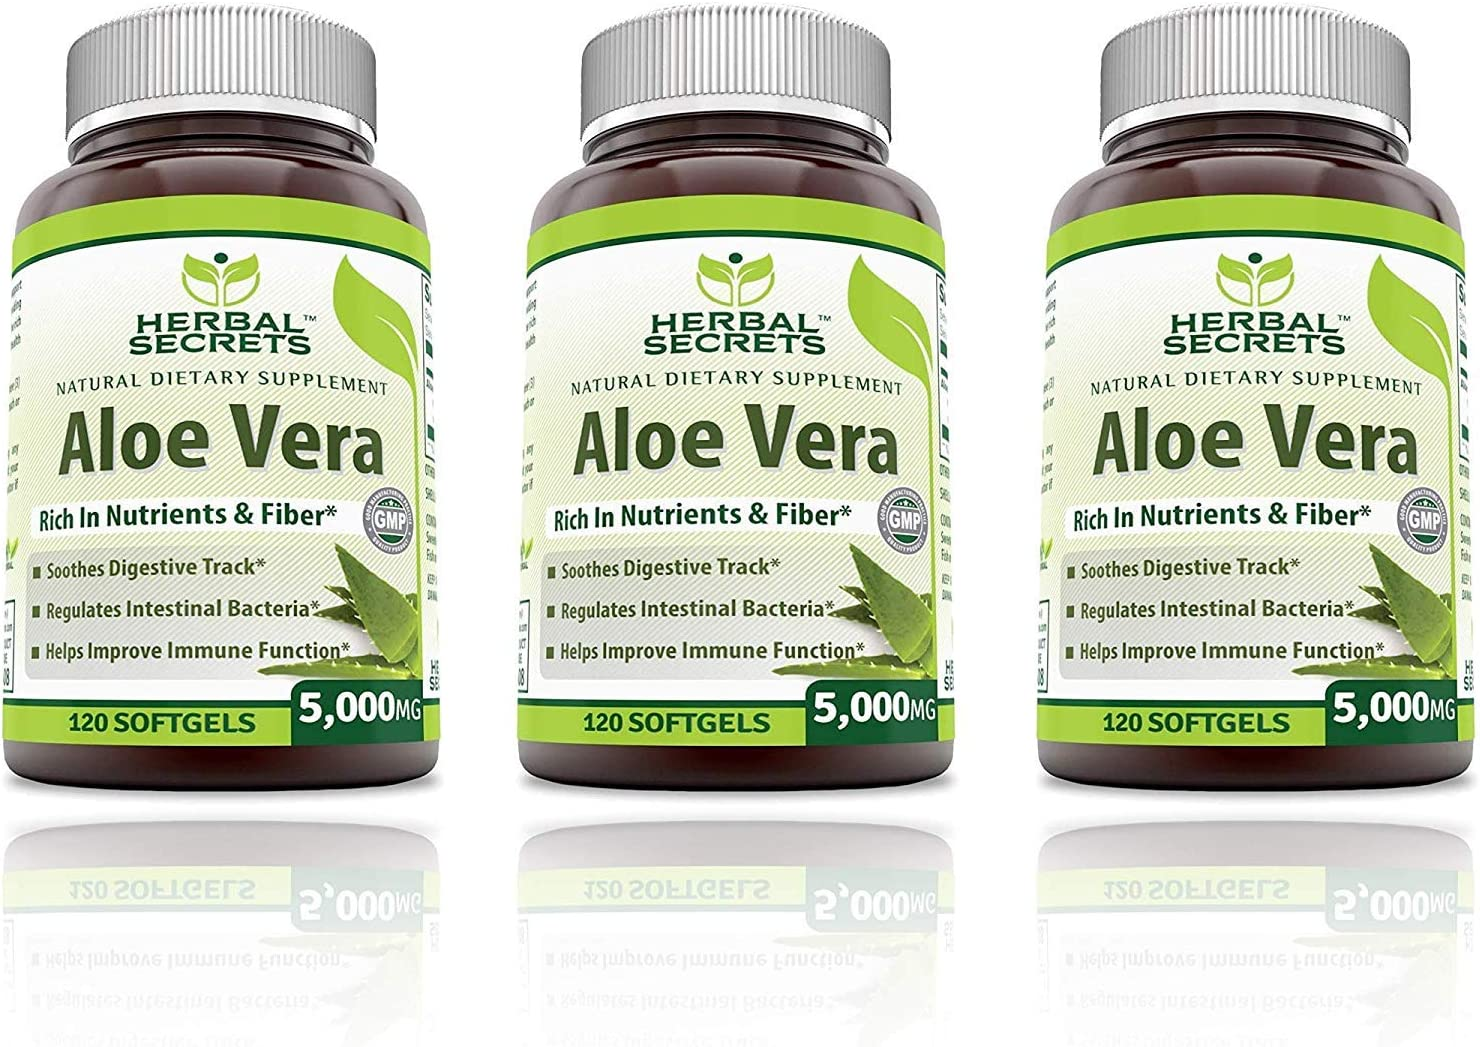 Herbal Secrets Aloe Vera Natural Dietary Supplements, 120 Softgels, 5000 Mg Pack of 3